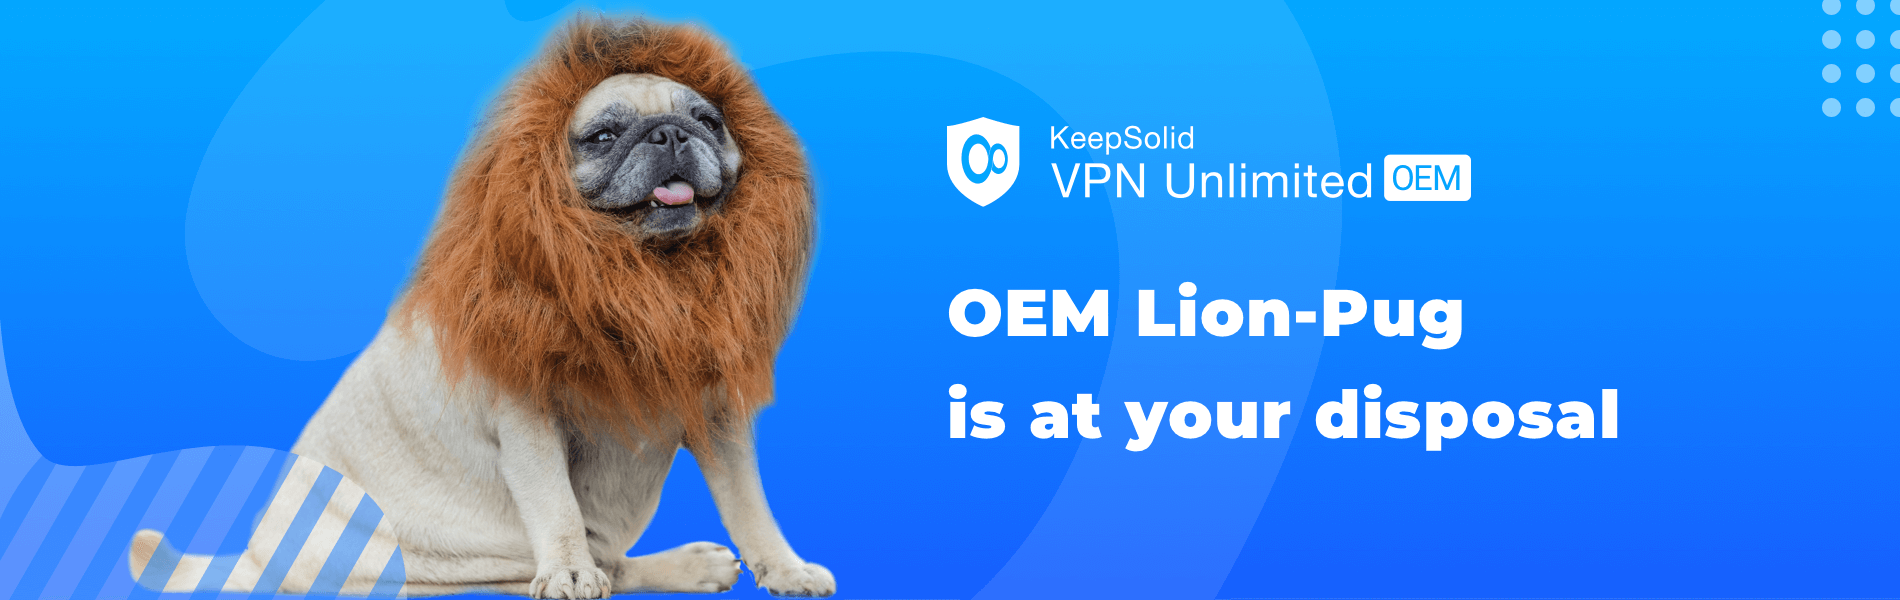 Funny face of OEM pug dog with lion costume.